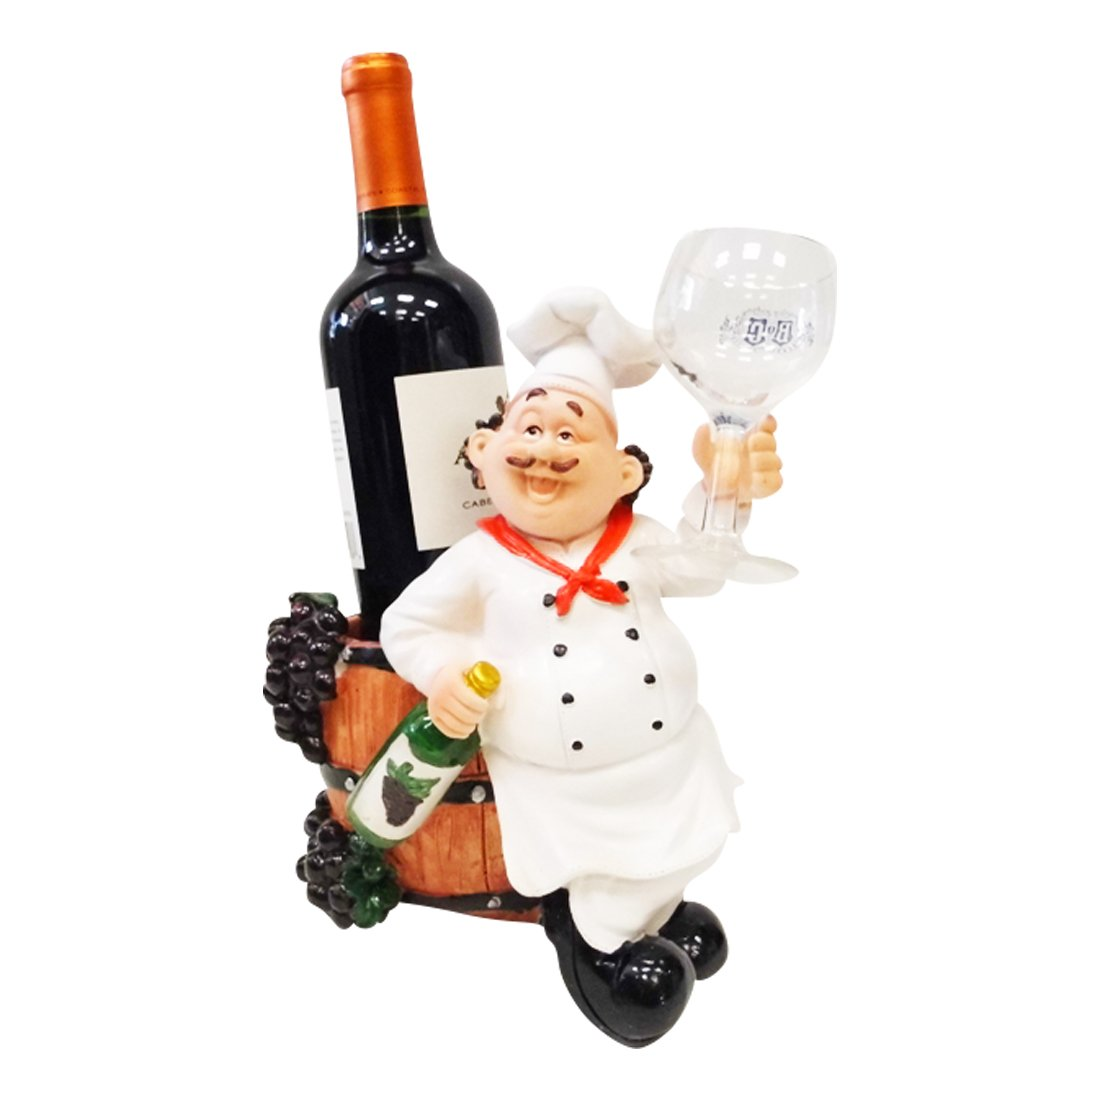 charming Chef Wine Holder Statue Part - 4: Amazon.com